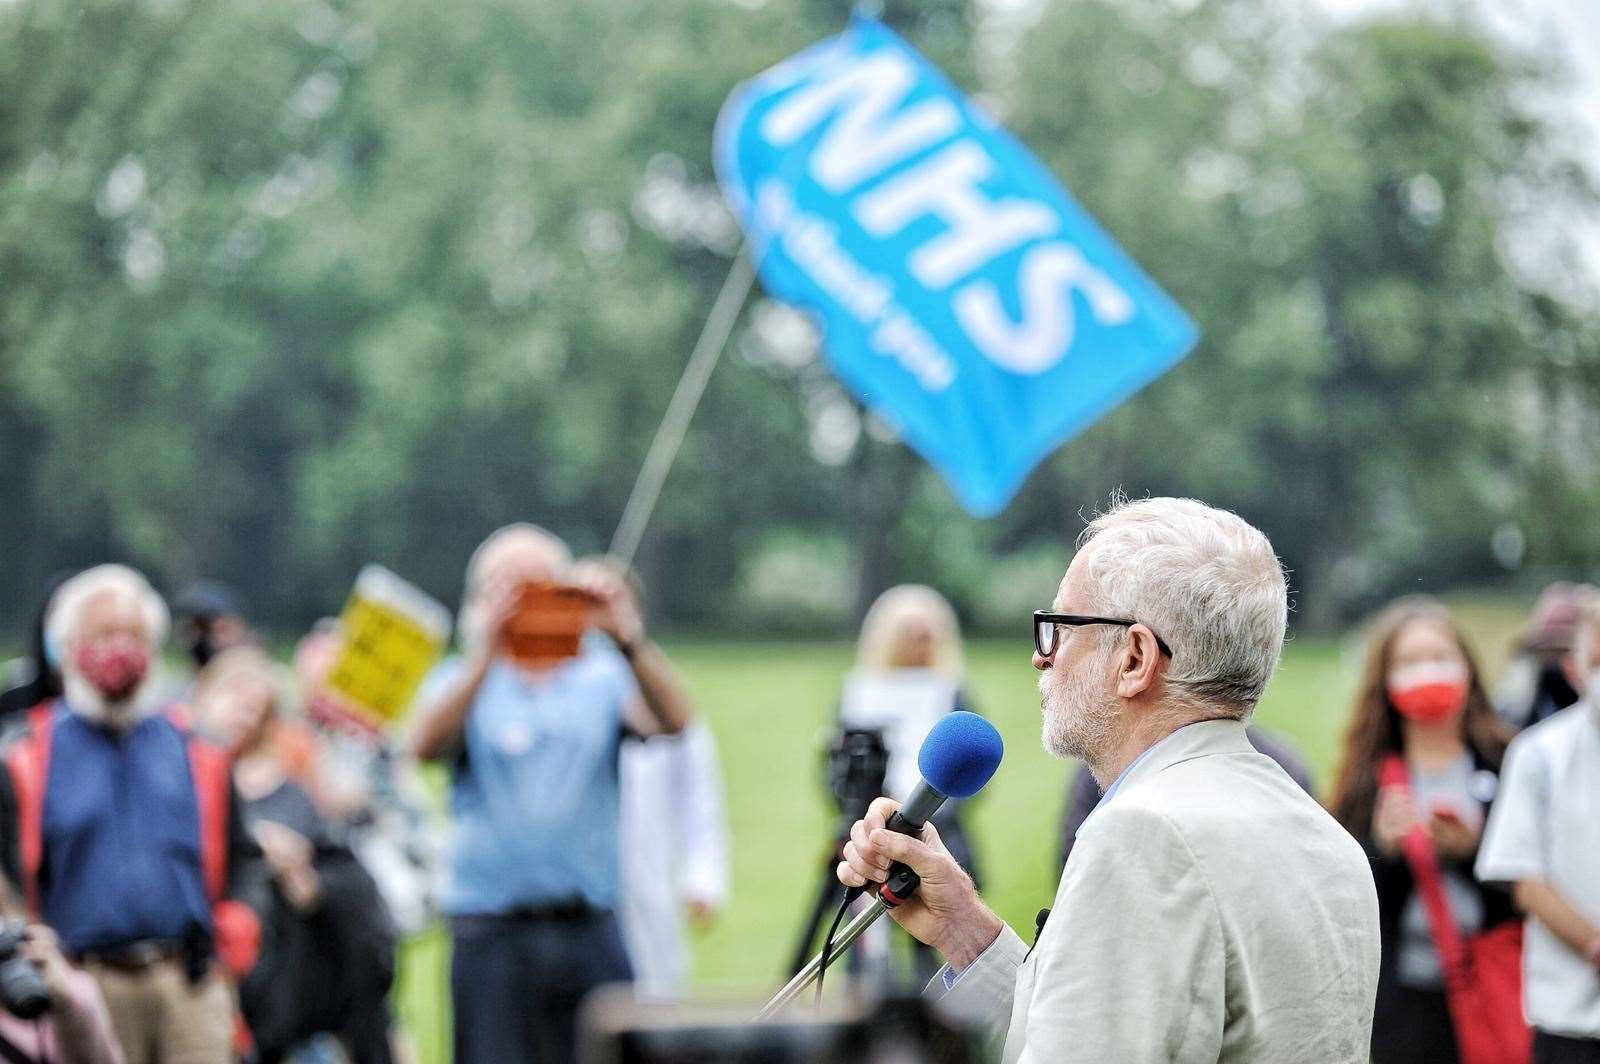 The QEH rally in the walks, Jeremy Corbyn visits Lynn to talk about the NHS social care system and the QEH CREDIT Ian Burt (48855116)